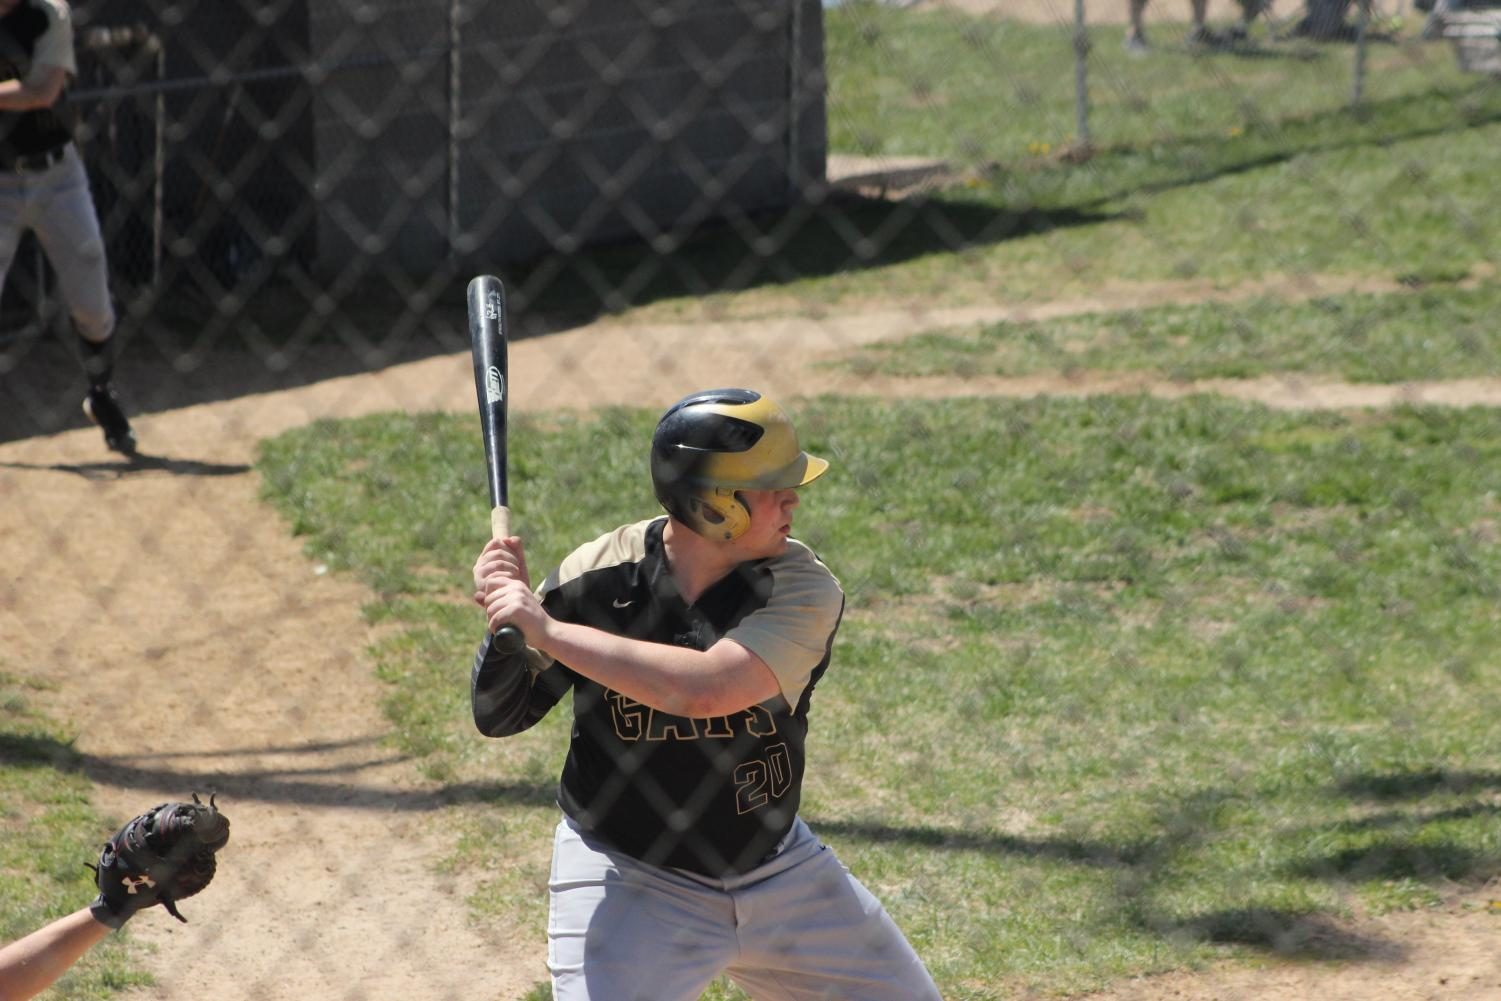 Kenny Couch waiting to hit the ball.